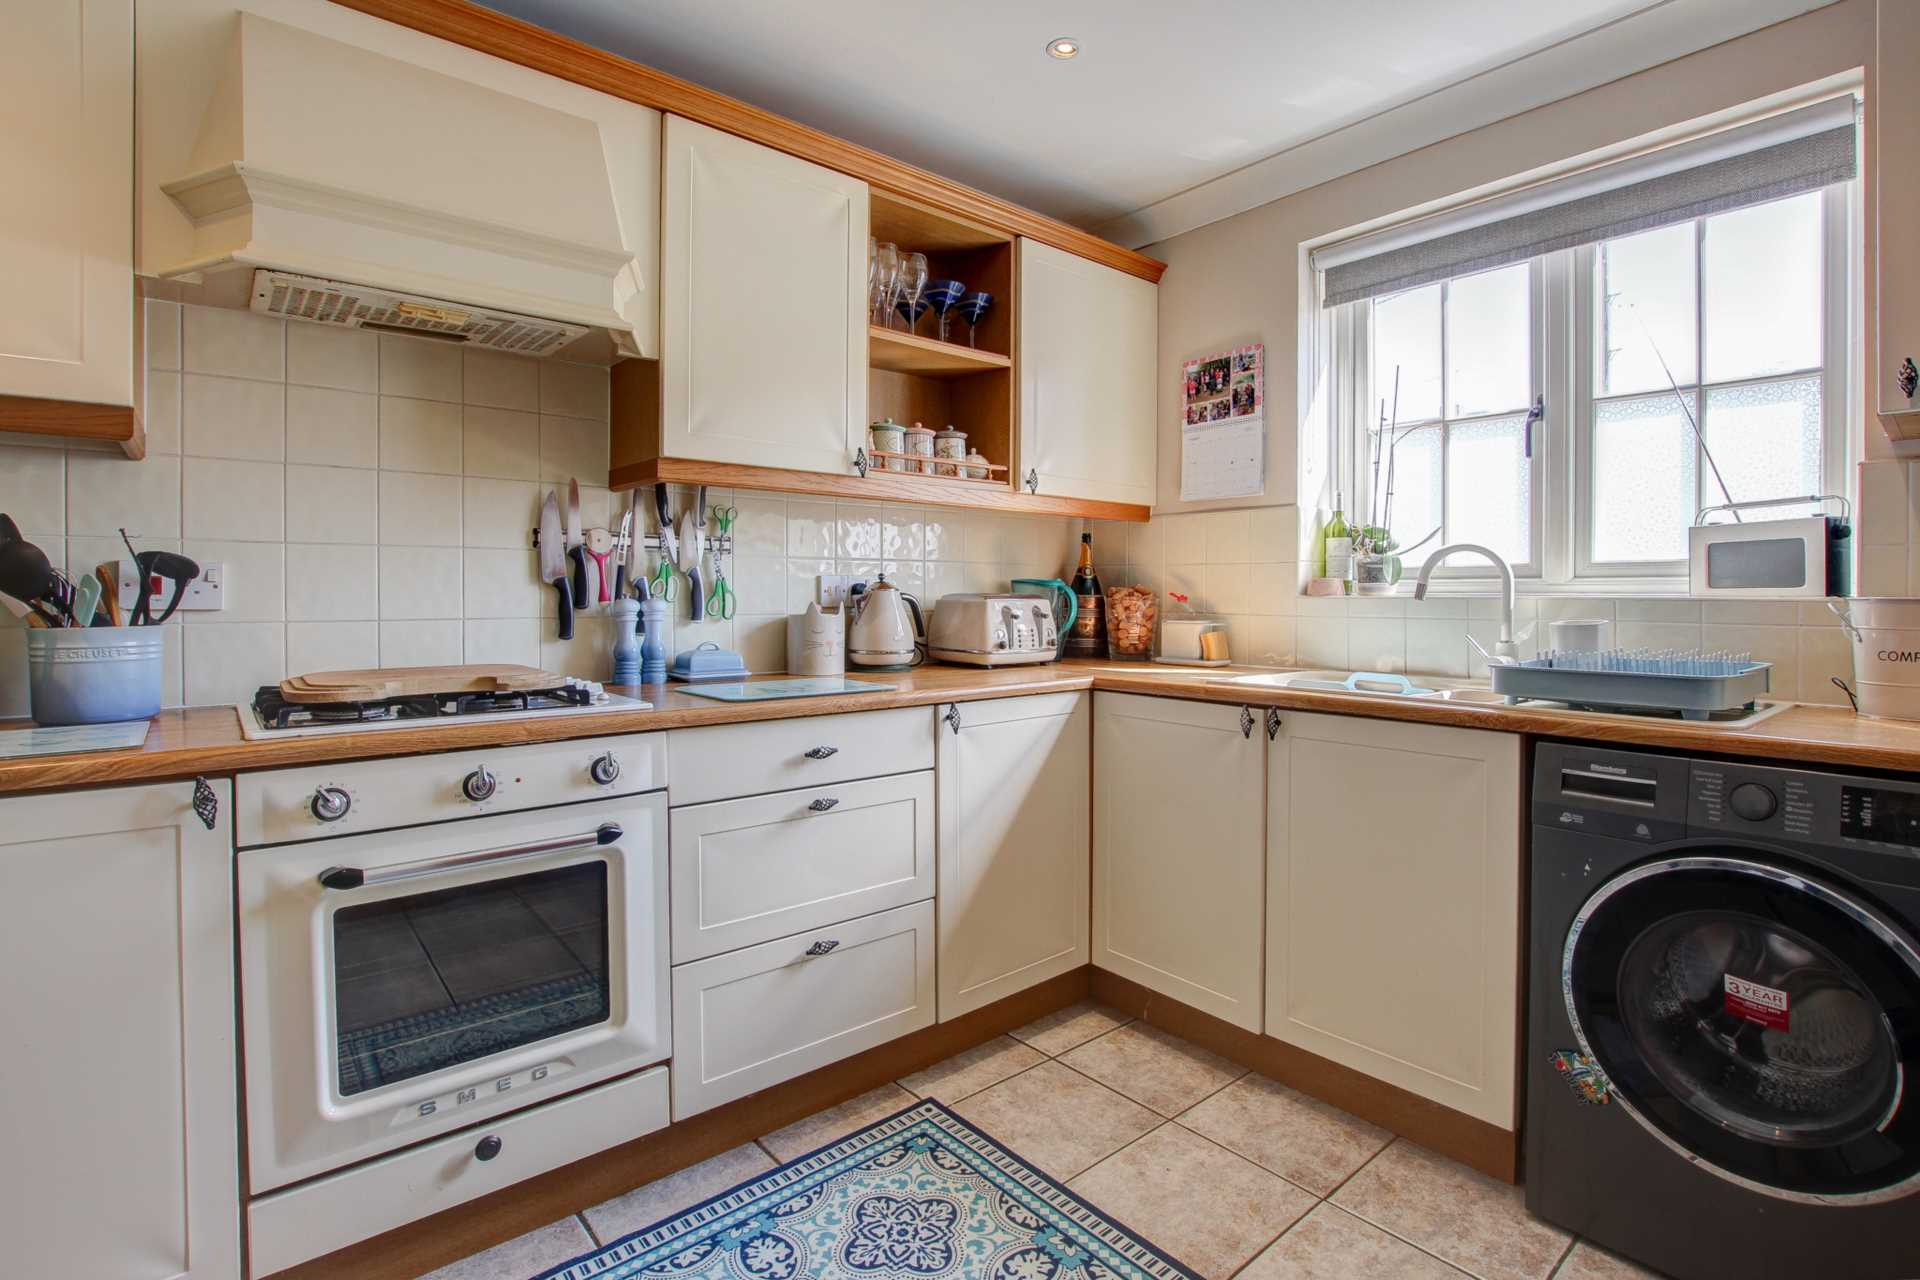 3 bed end of terrace house for sale in Plumbley Meadows, Winterborne Kingston, Blandford Forum 1